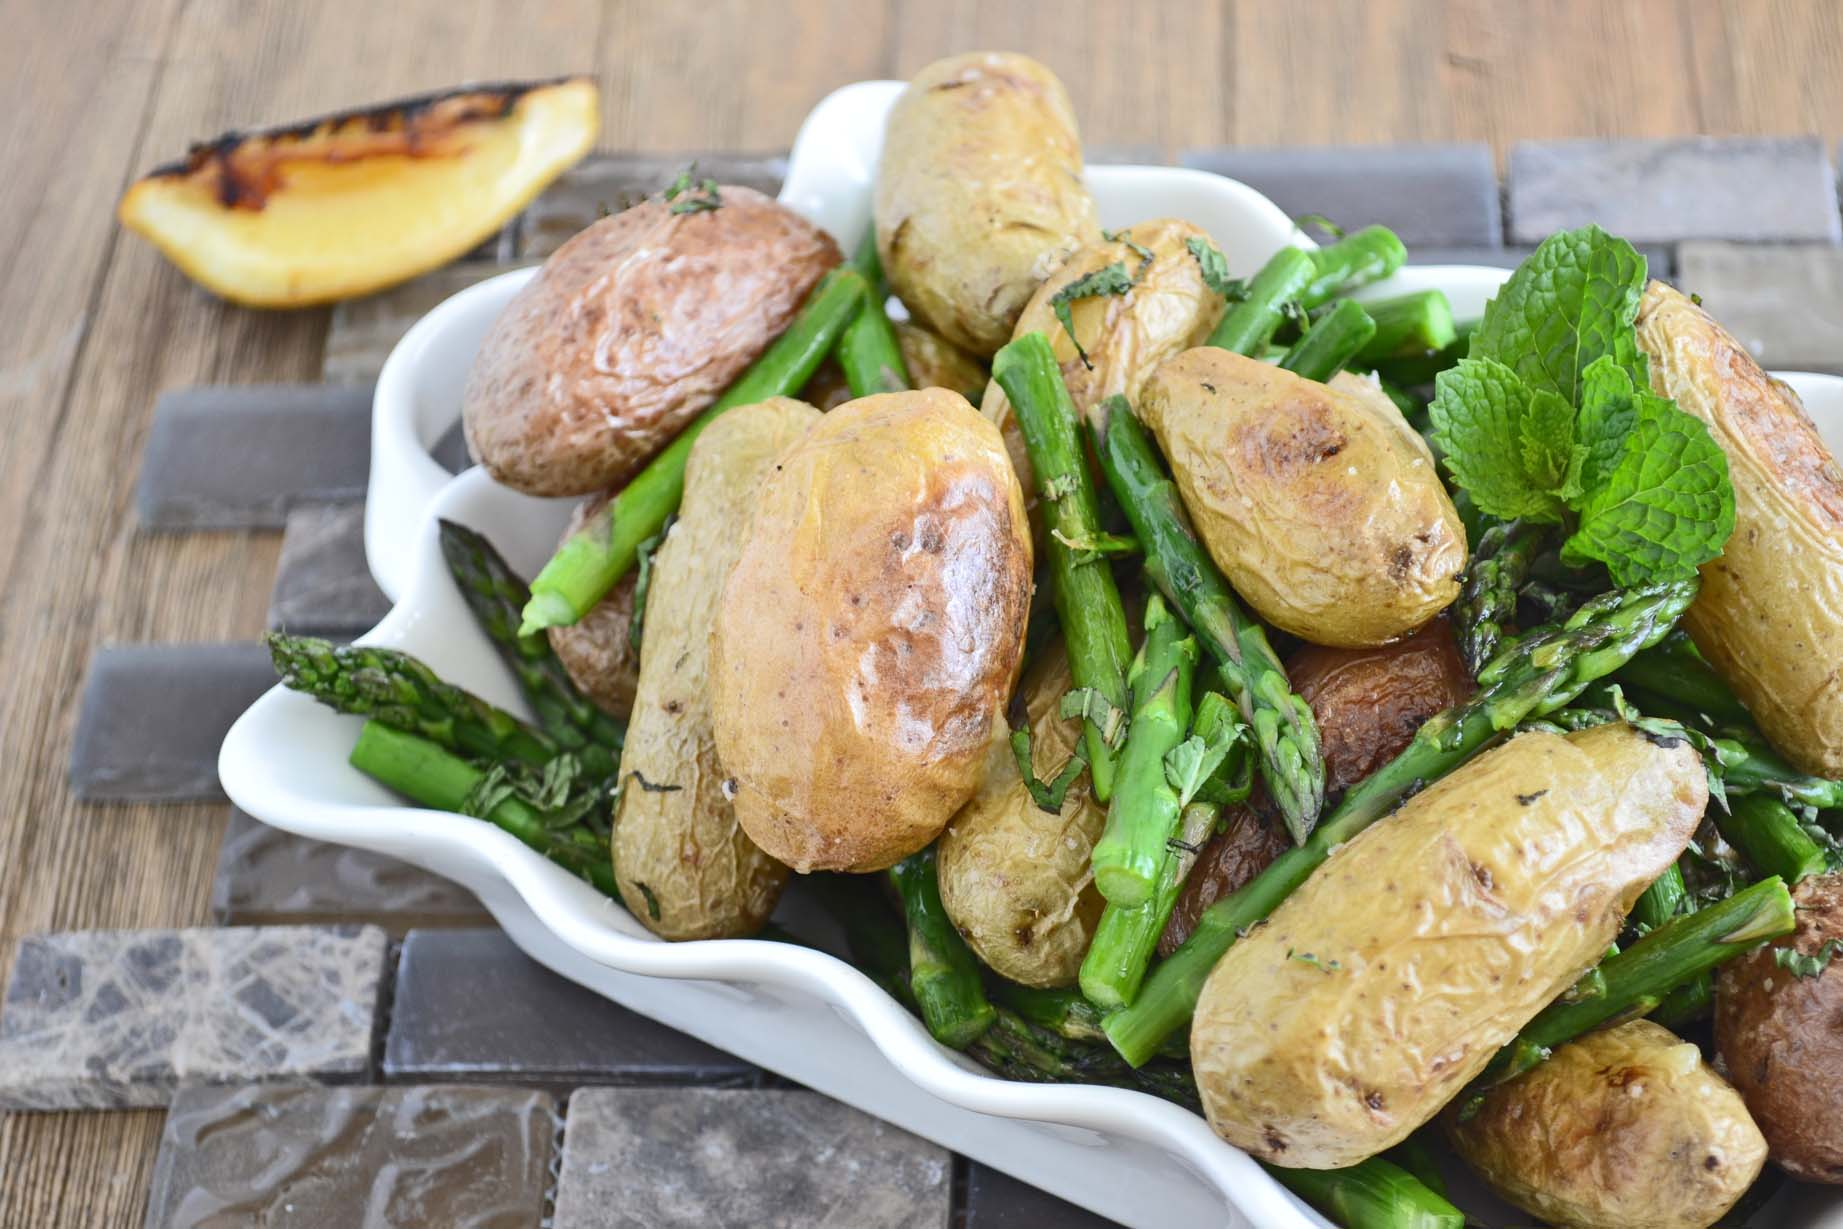 Romantic Dinner Tip #5: Go on a culinary adventure by deciding together to try something new, like the combination of mint and asparagus in this recipe for Roasted Potatoes and Asparagus with MInt and Charred Lemon by www.cookthestory.com